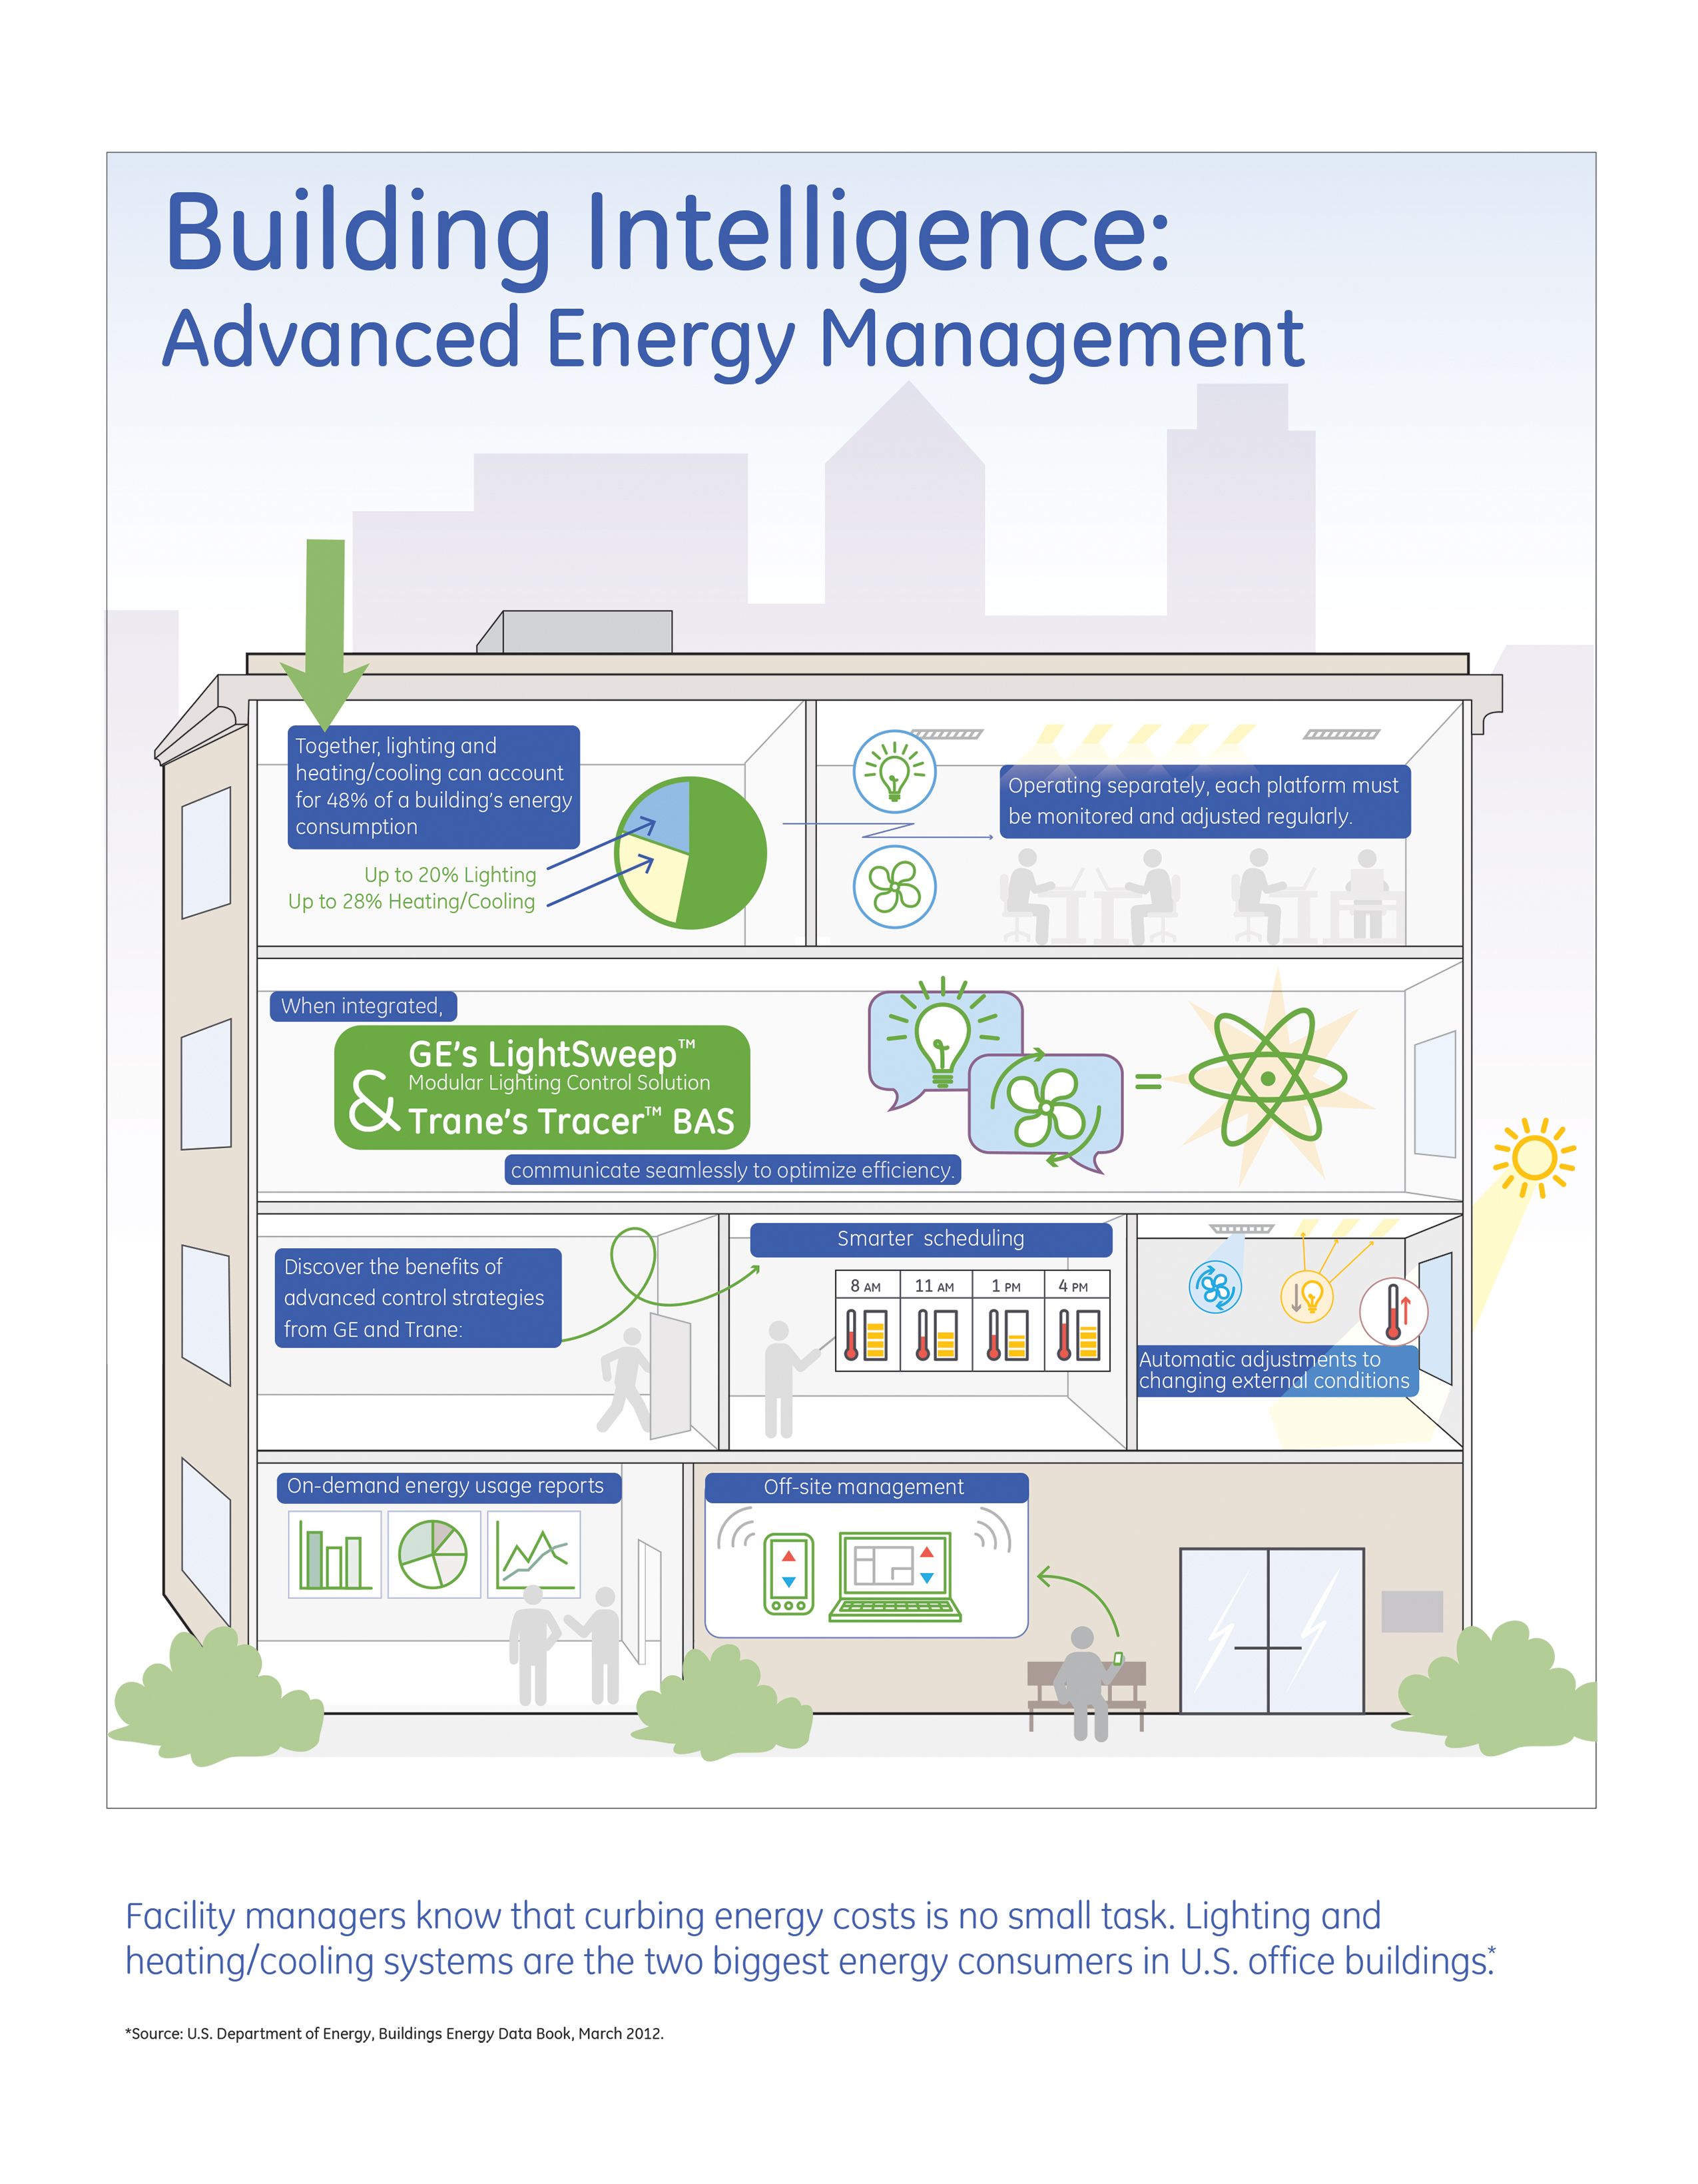 energy costs controlled for commercial buildings with new advanced rh businesswire com